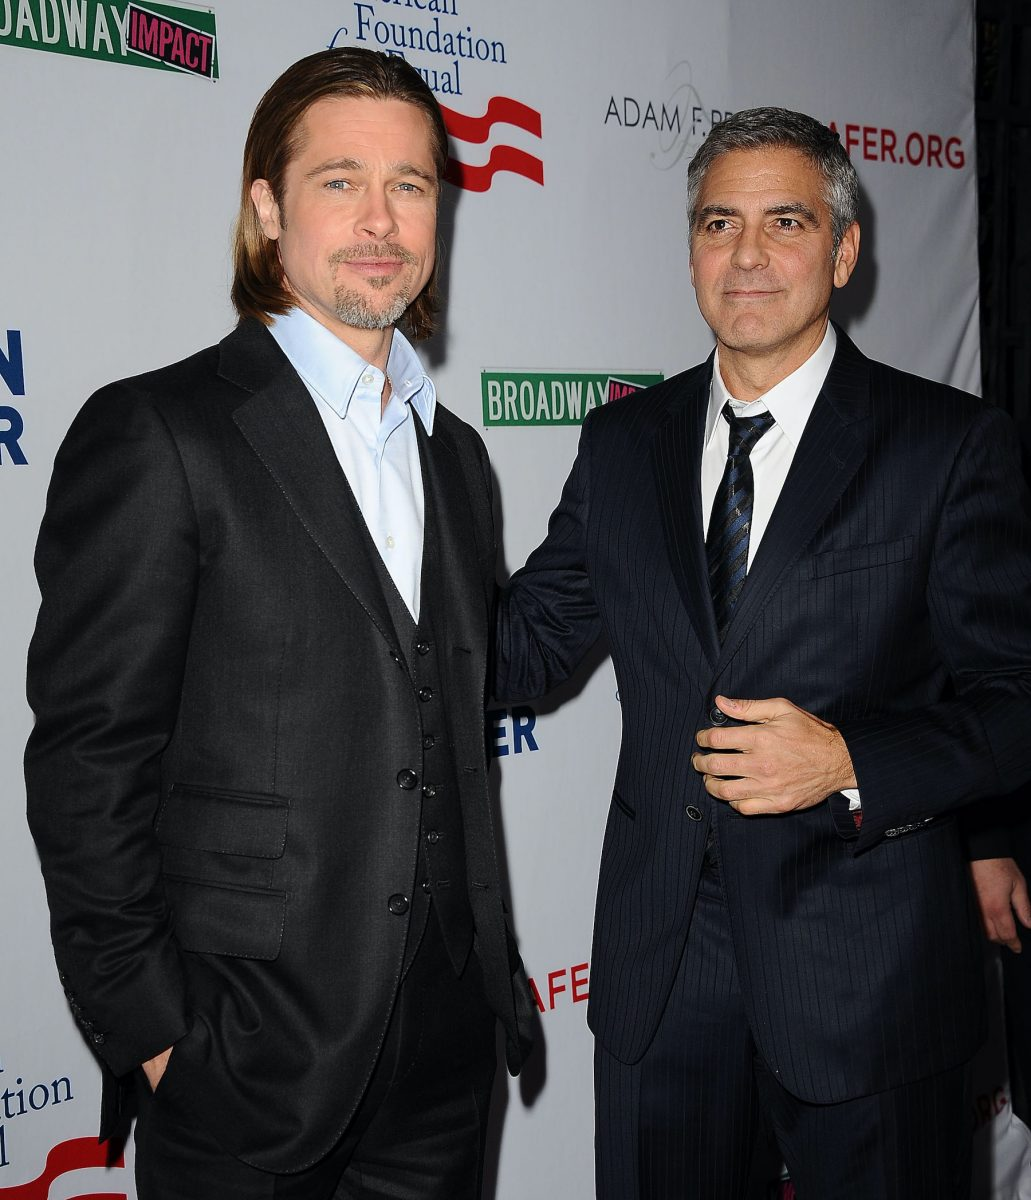 Brad Pitt and George Clooney at the premiere of '8'